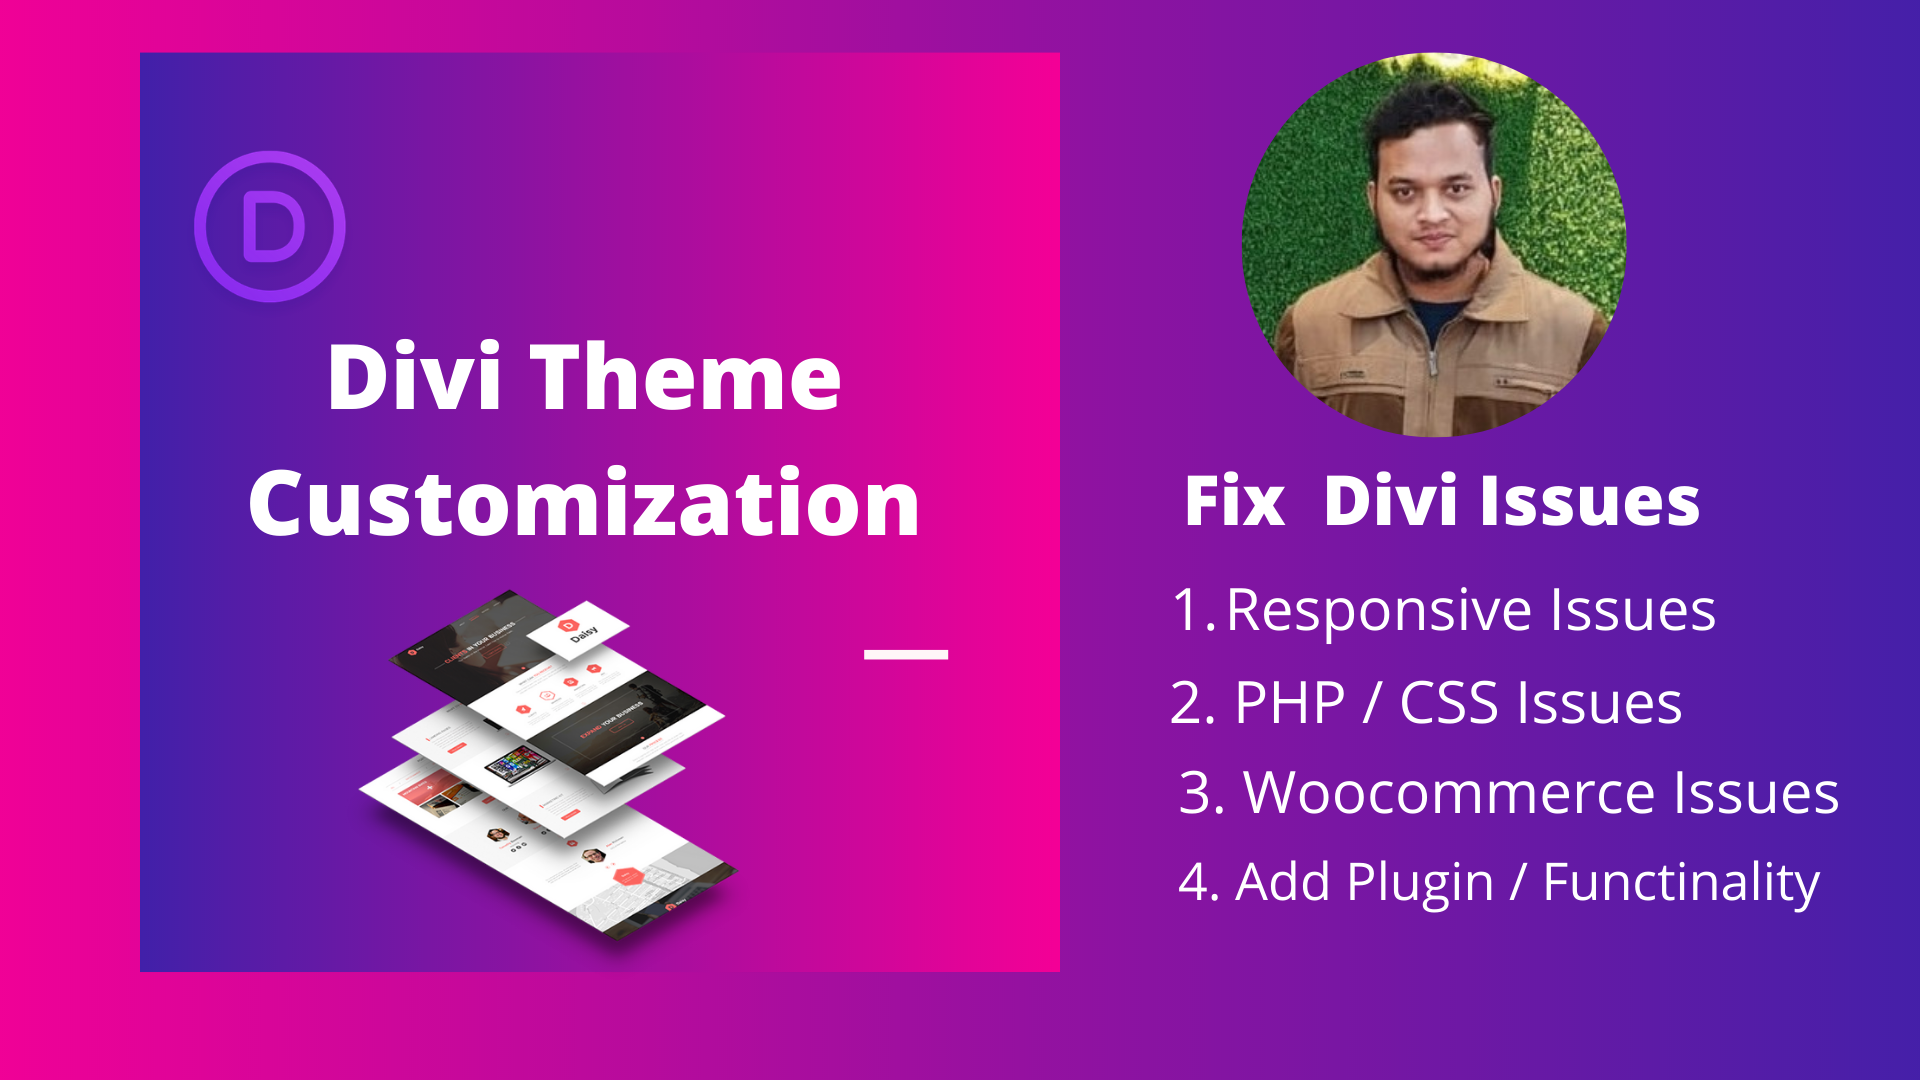 I will do Divi theme customization and fix Divi theme issues